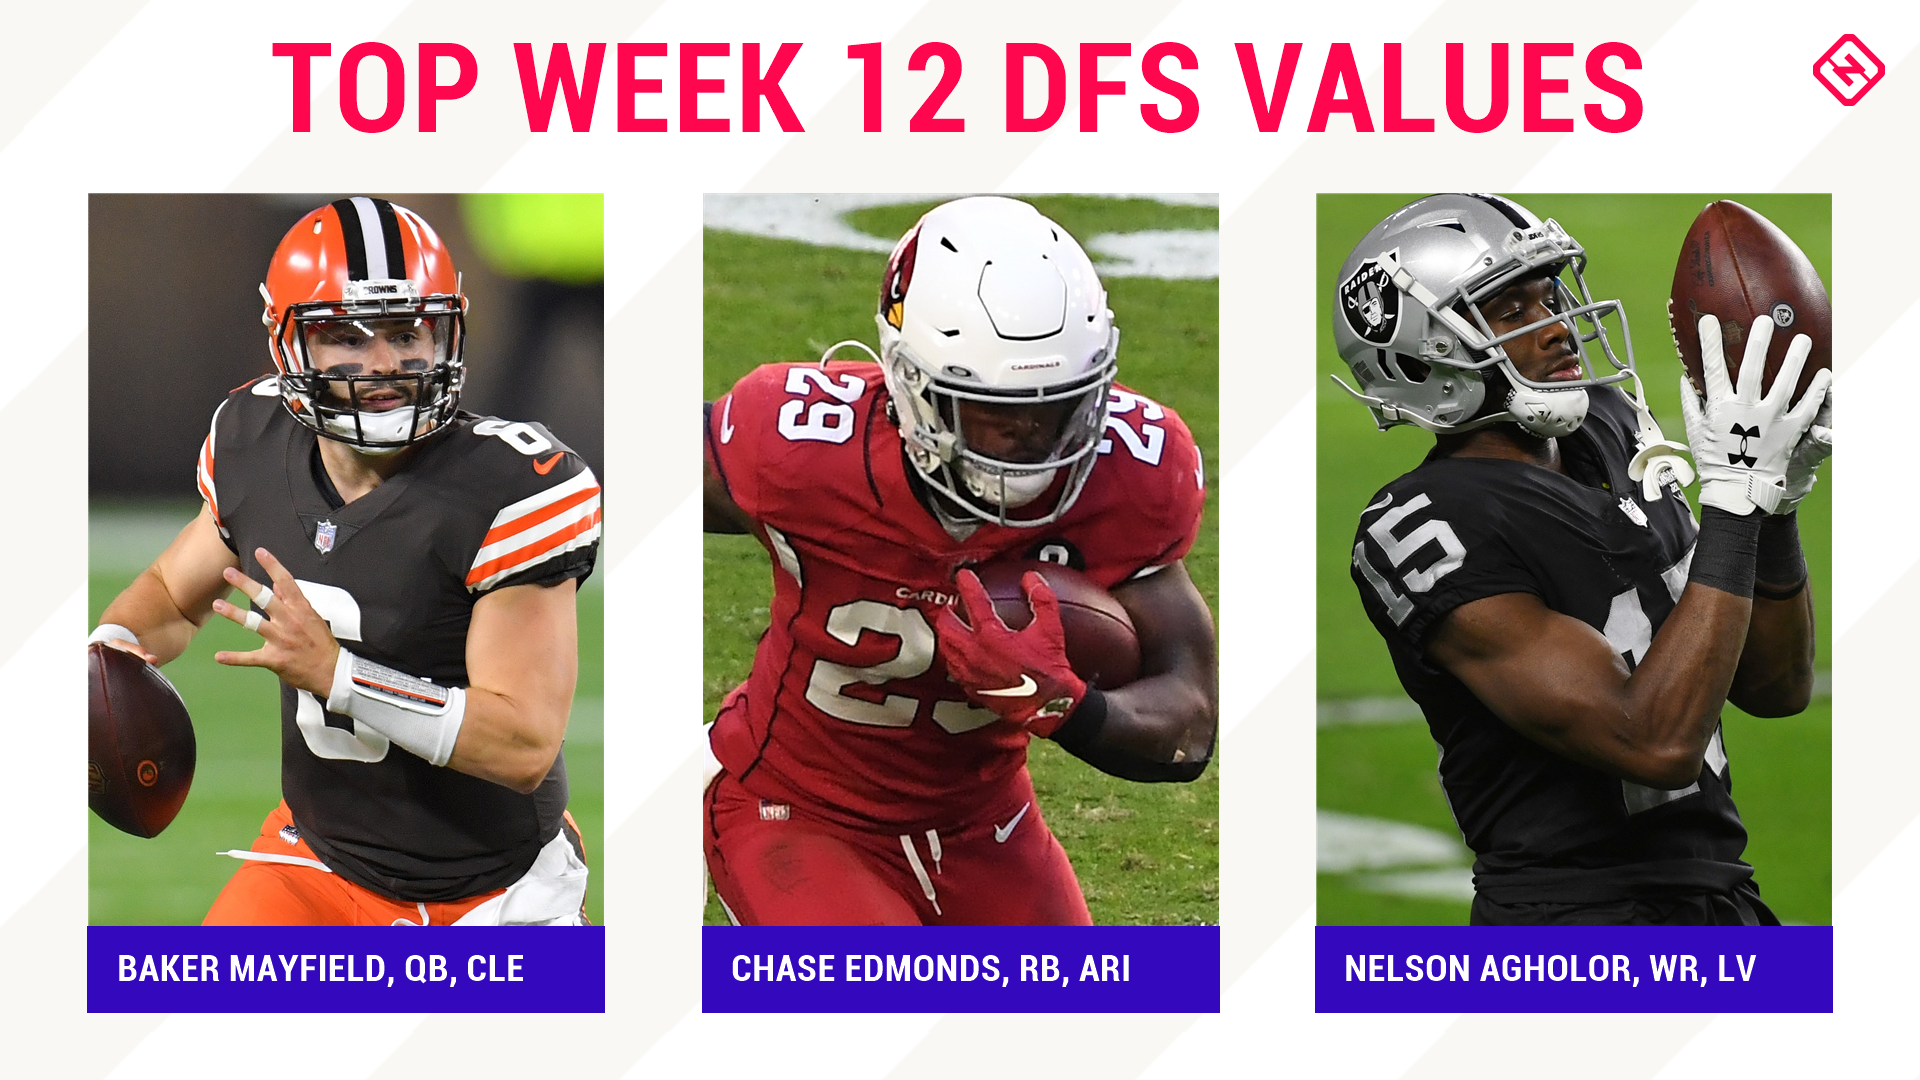 Week 12 NFL DFS Picks: Best value players, sleepers for DraftKings, FanDuel daily fantasy football lineups - sporting news